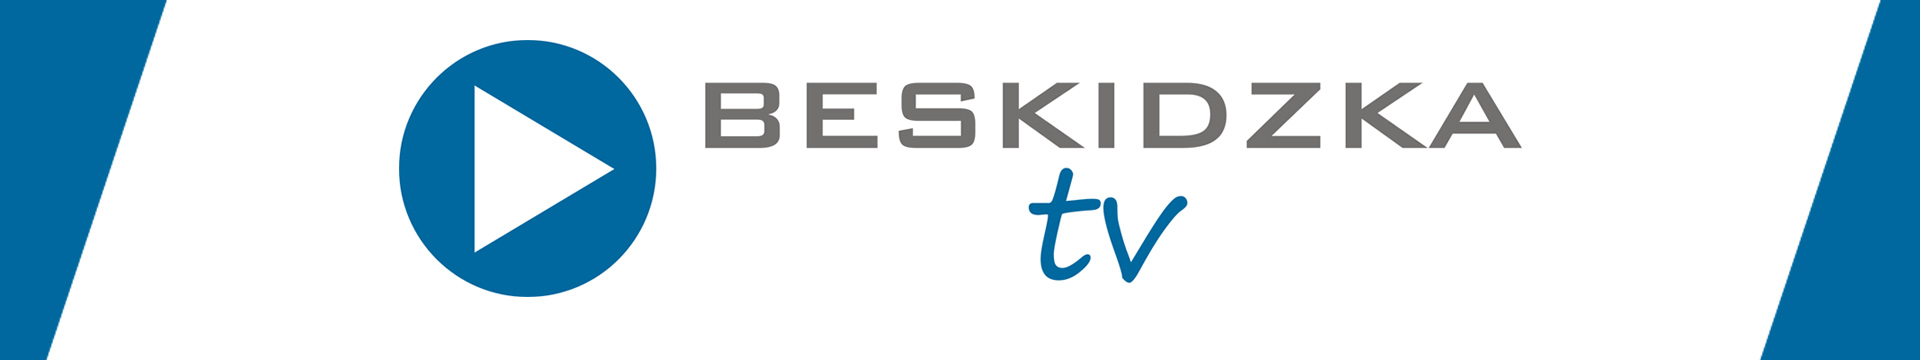 beskidzka_tv